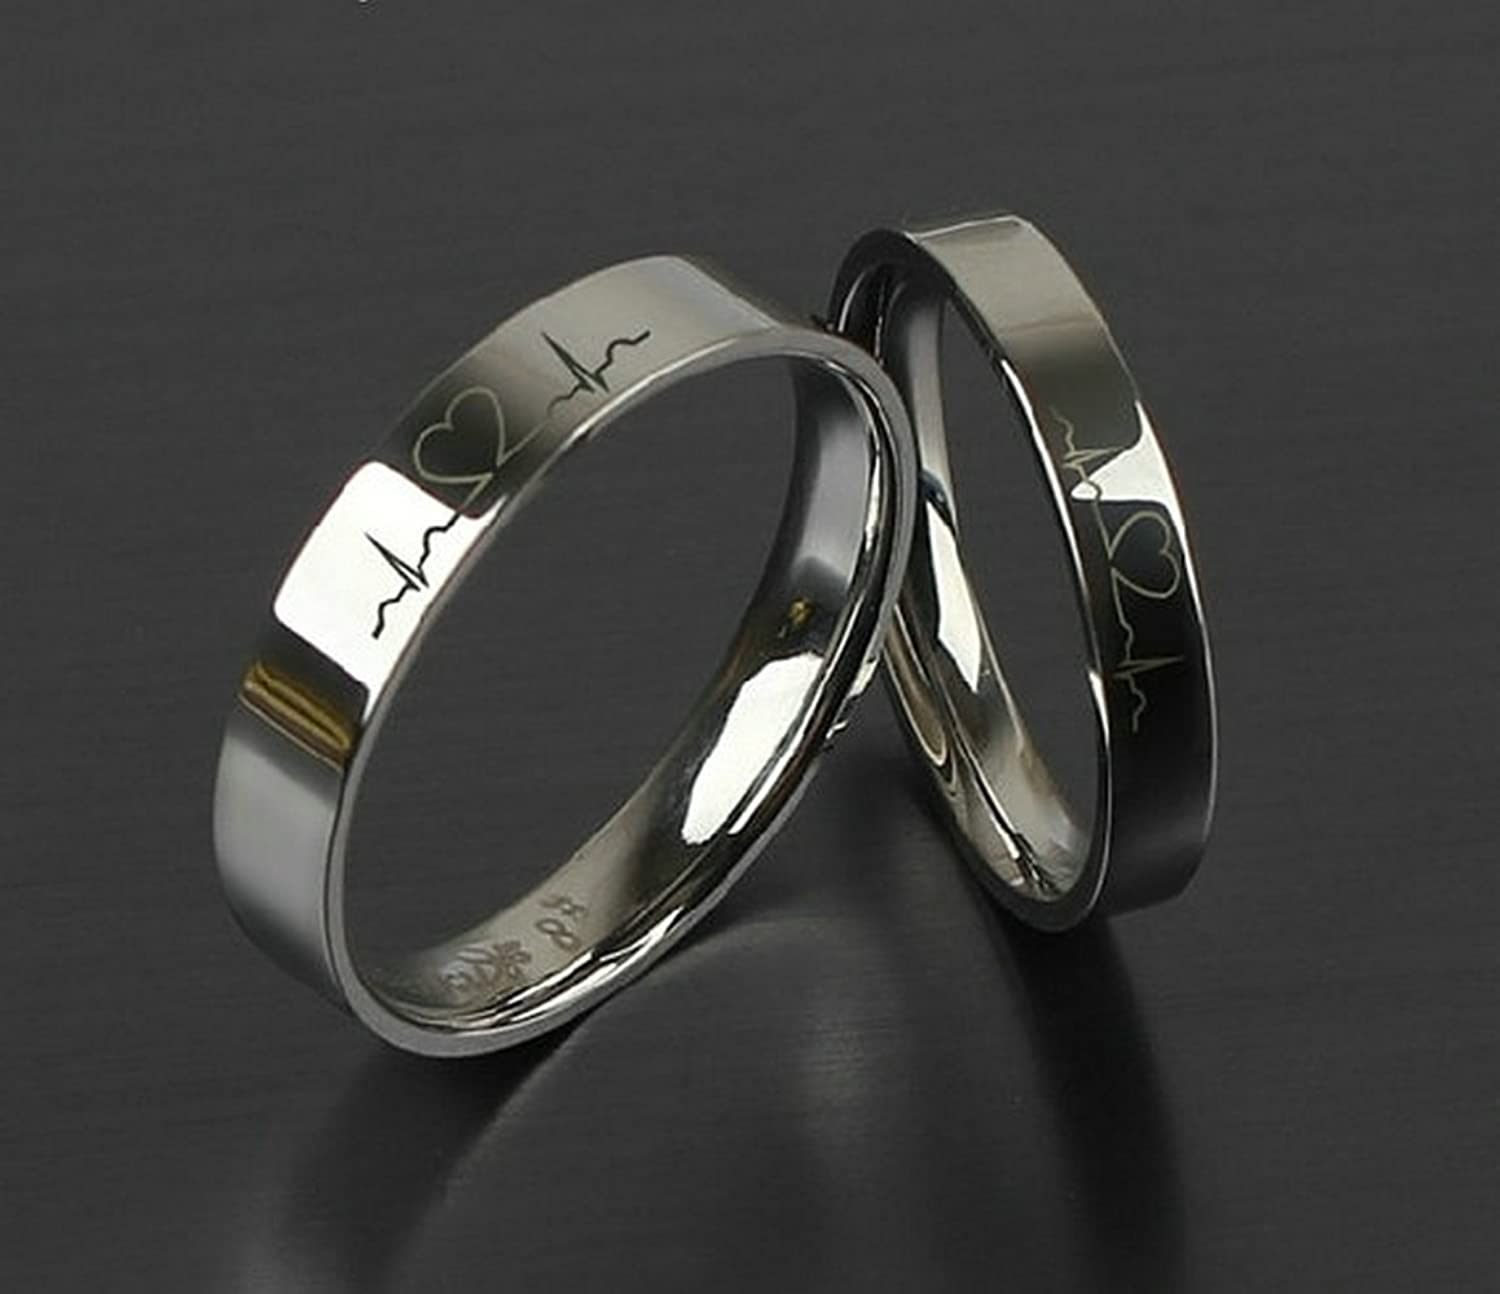 Amazon.com: Free Engraving Rings Electrocardiogram Promise Rings Titanium  ECG Ring Heartbeat Ring Wedding Bands Engagement Rings Heartbeat Laser  Engraved ...